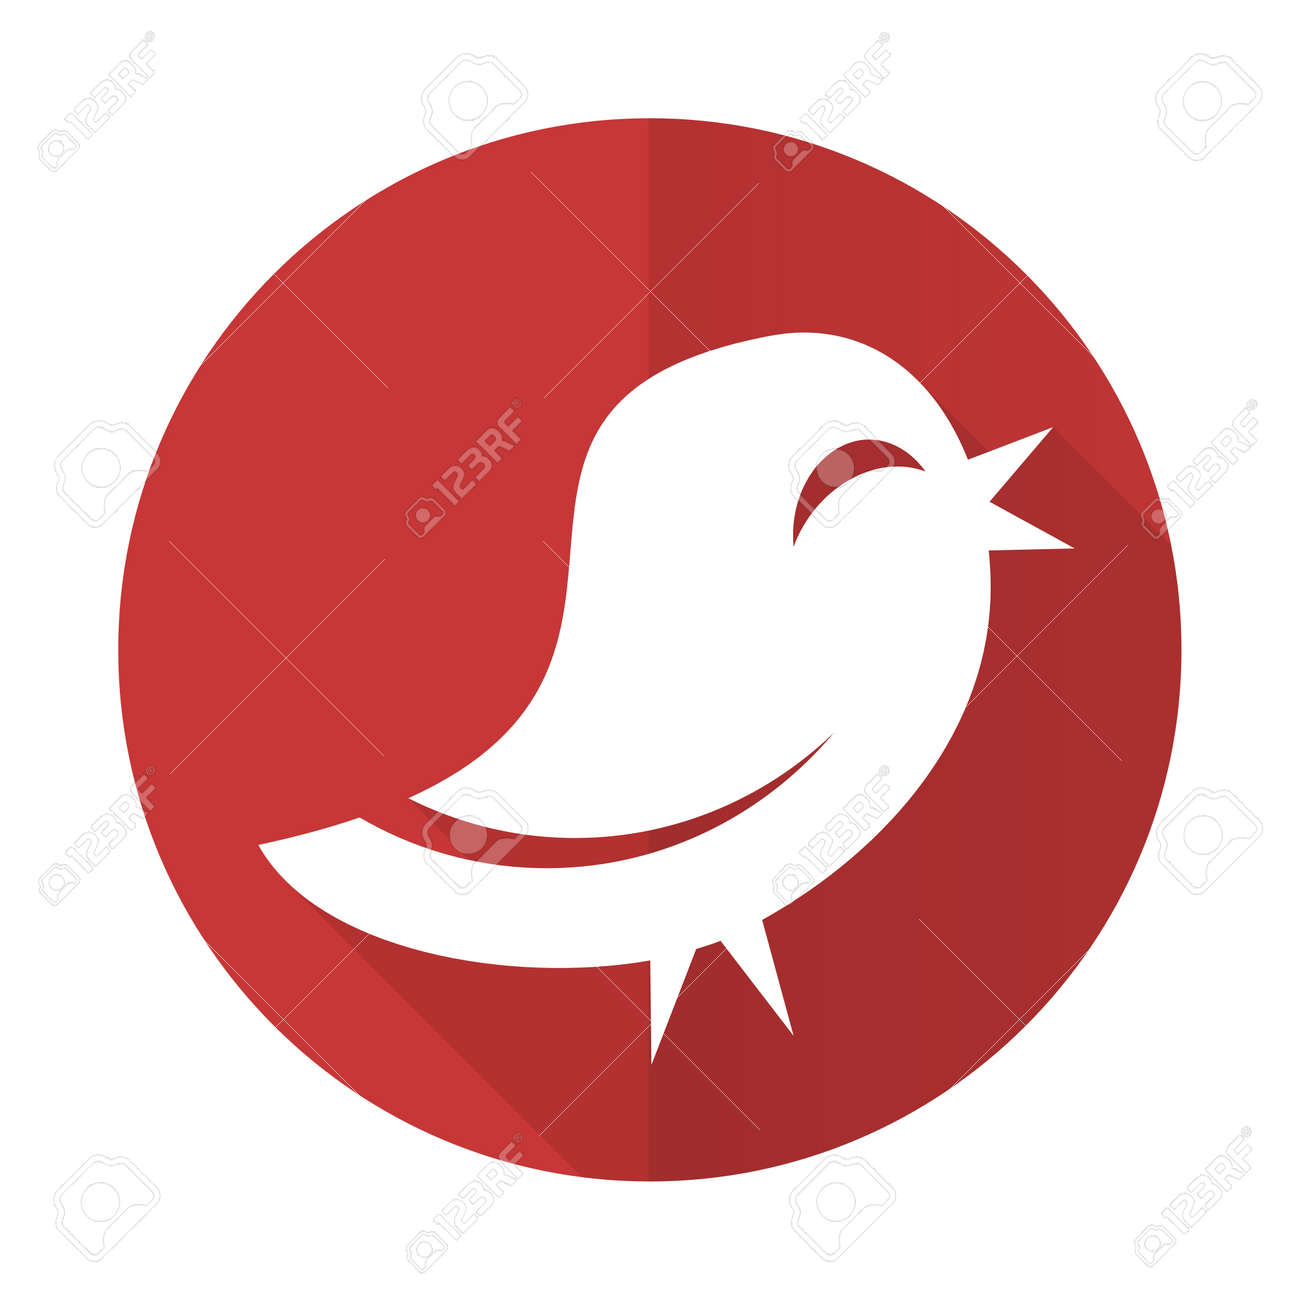 Red Bird Flat Icon Stock Photo Picture And Royalty Free Image